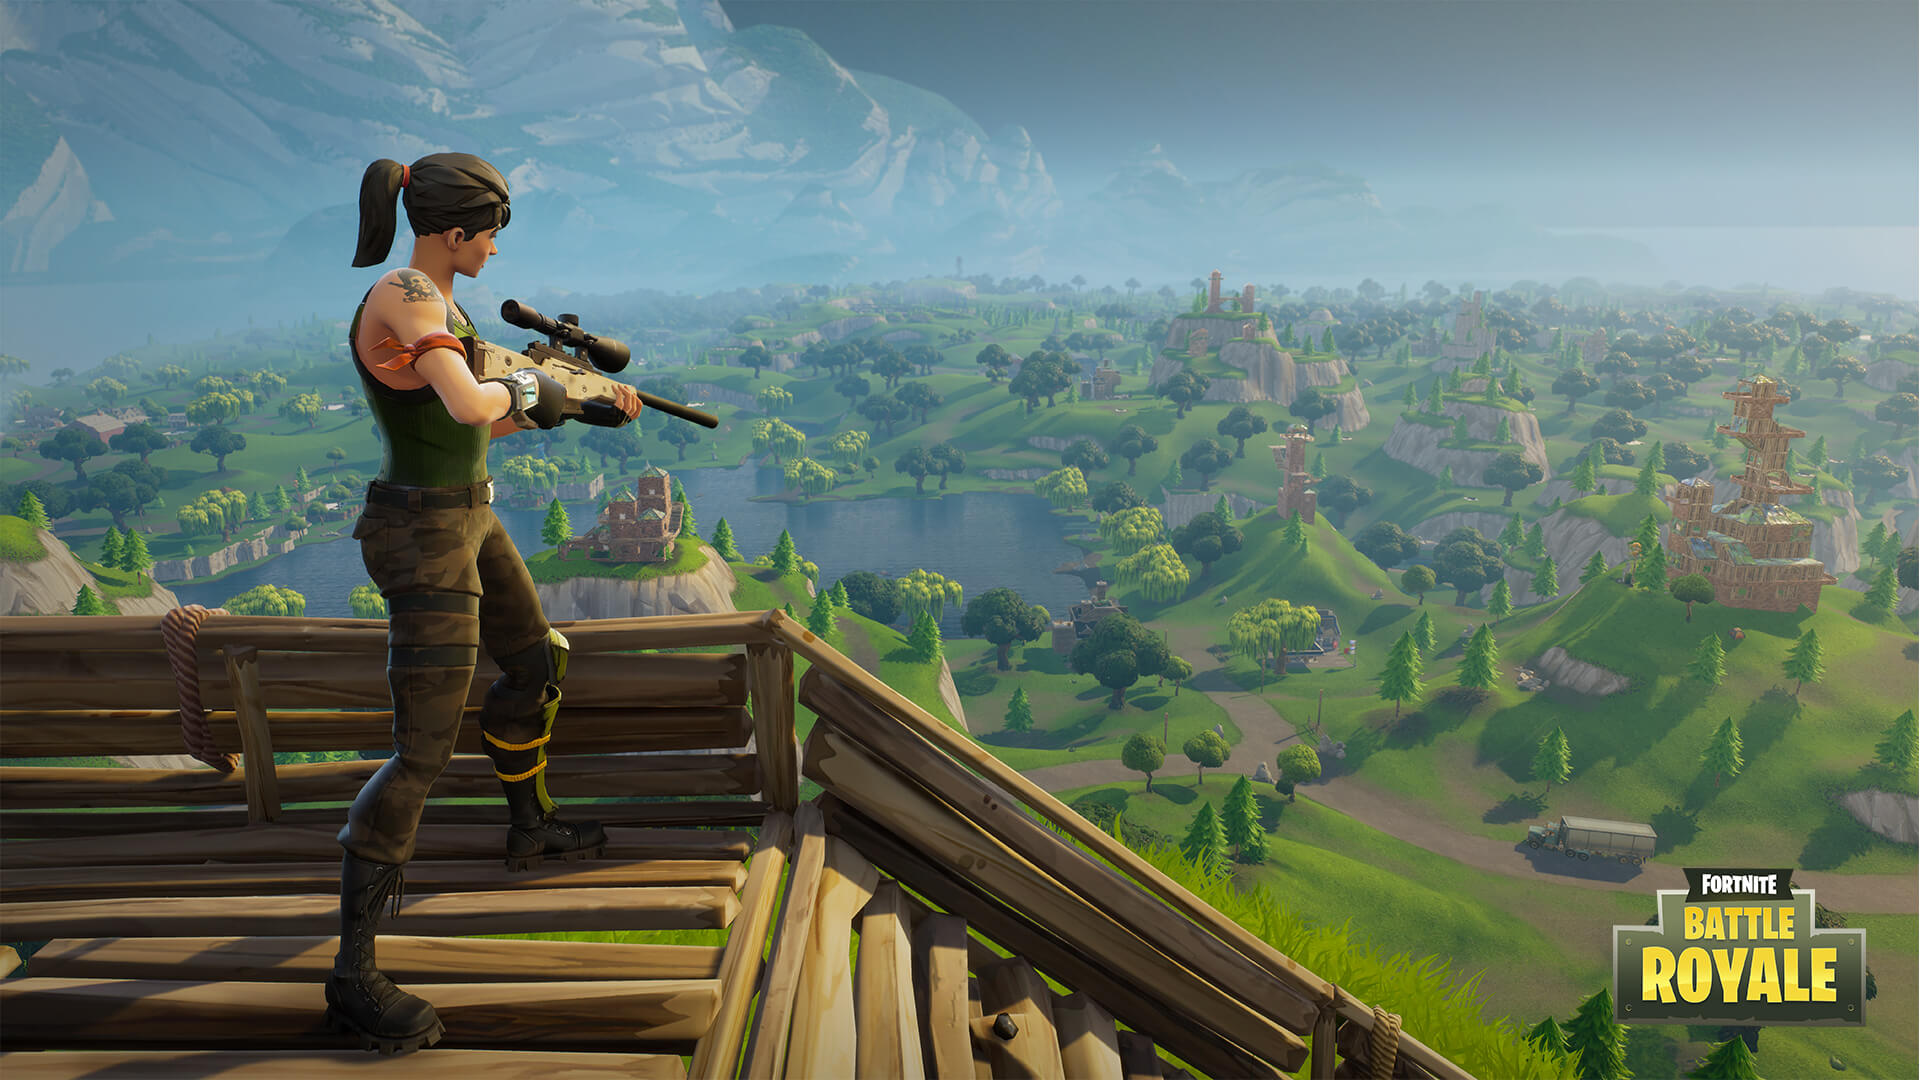 Fortnite Tips Reddit Battle Royale Fortnite Duos Tips To Win How To Get The 1 Victory Royale Heavy Com